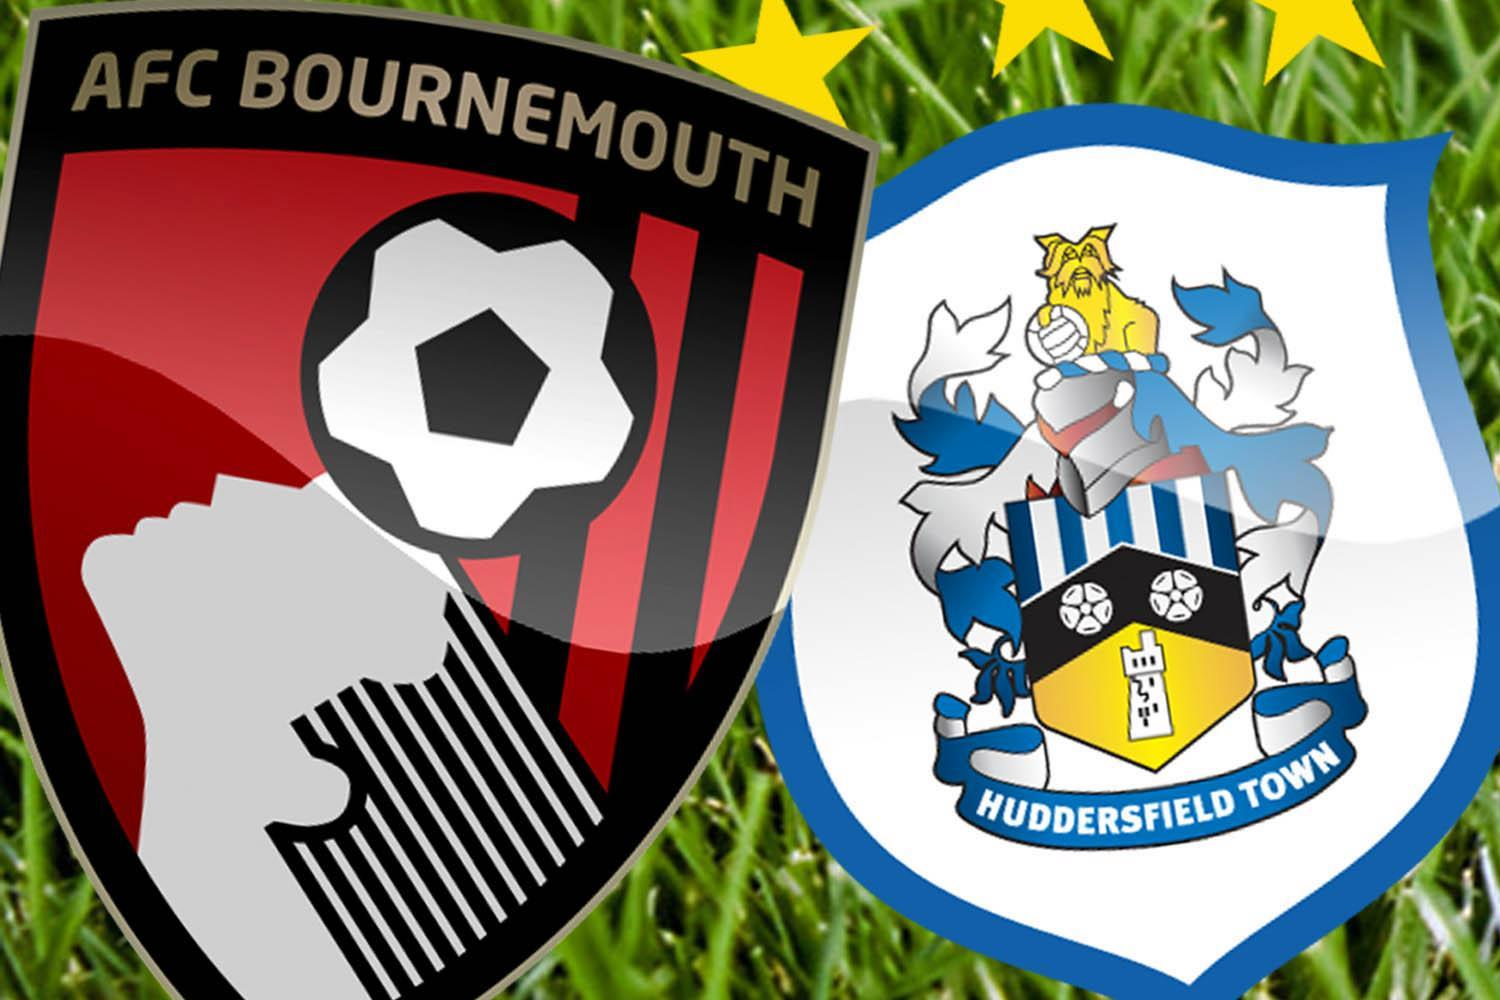 Bournemouth vs Huddersfield LIVE SCORE: Latest updates and commentary for the Premier League match